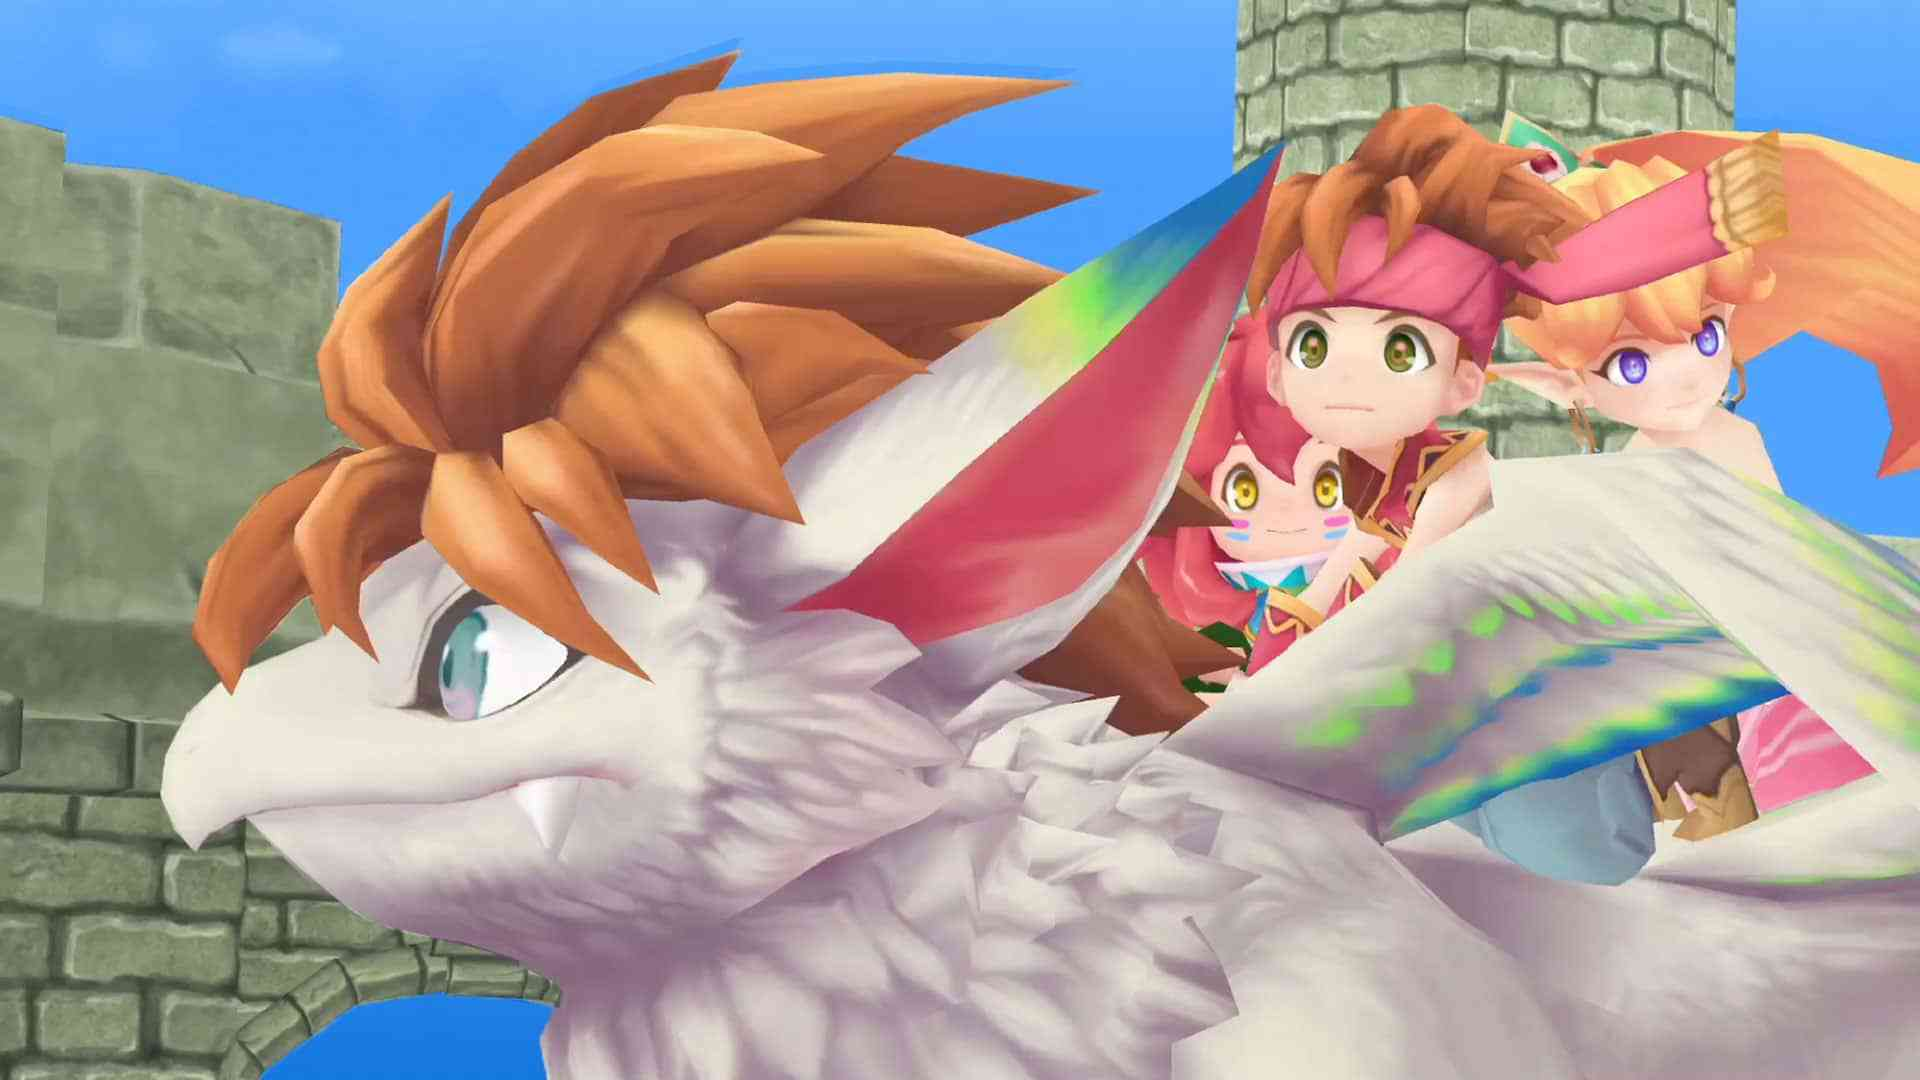 Secret Of Mana Review - For Better or For Worse